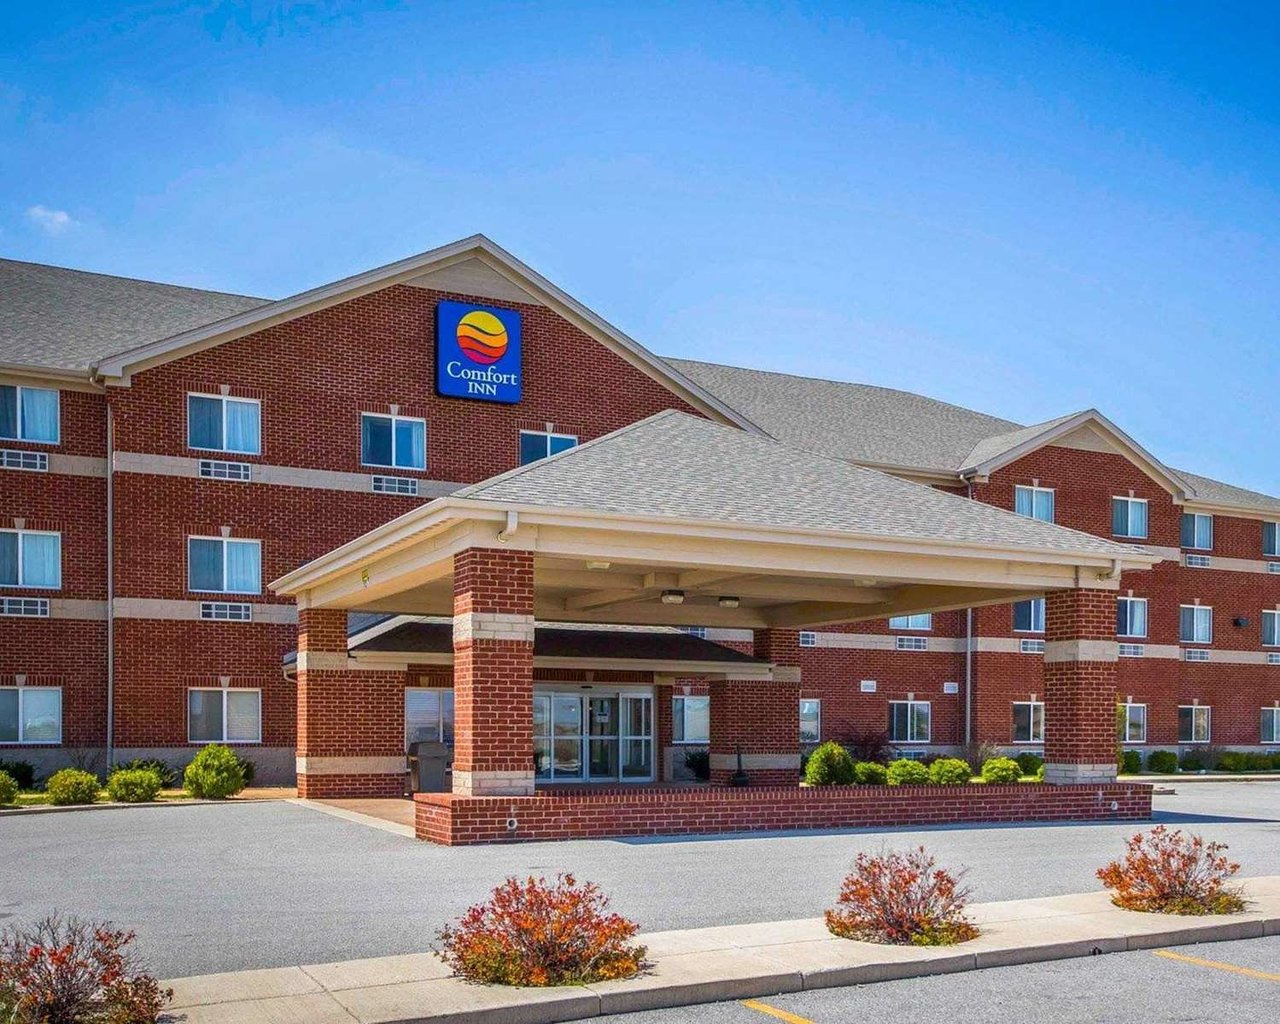 Hebron Indiana Map.Comfort Inn 95 1 1 1 Prices Hotel Reviews Hebron In